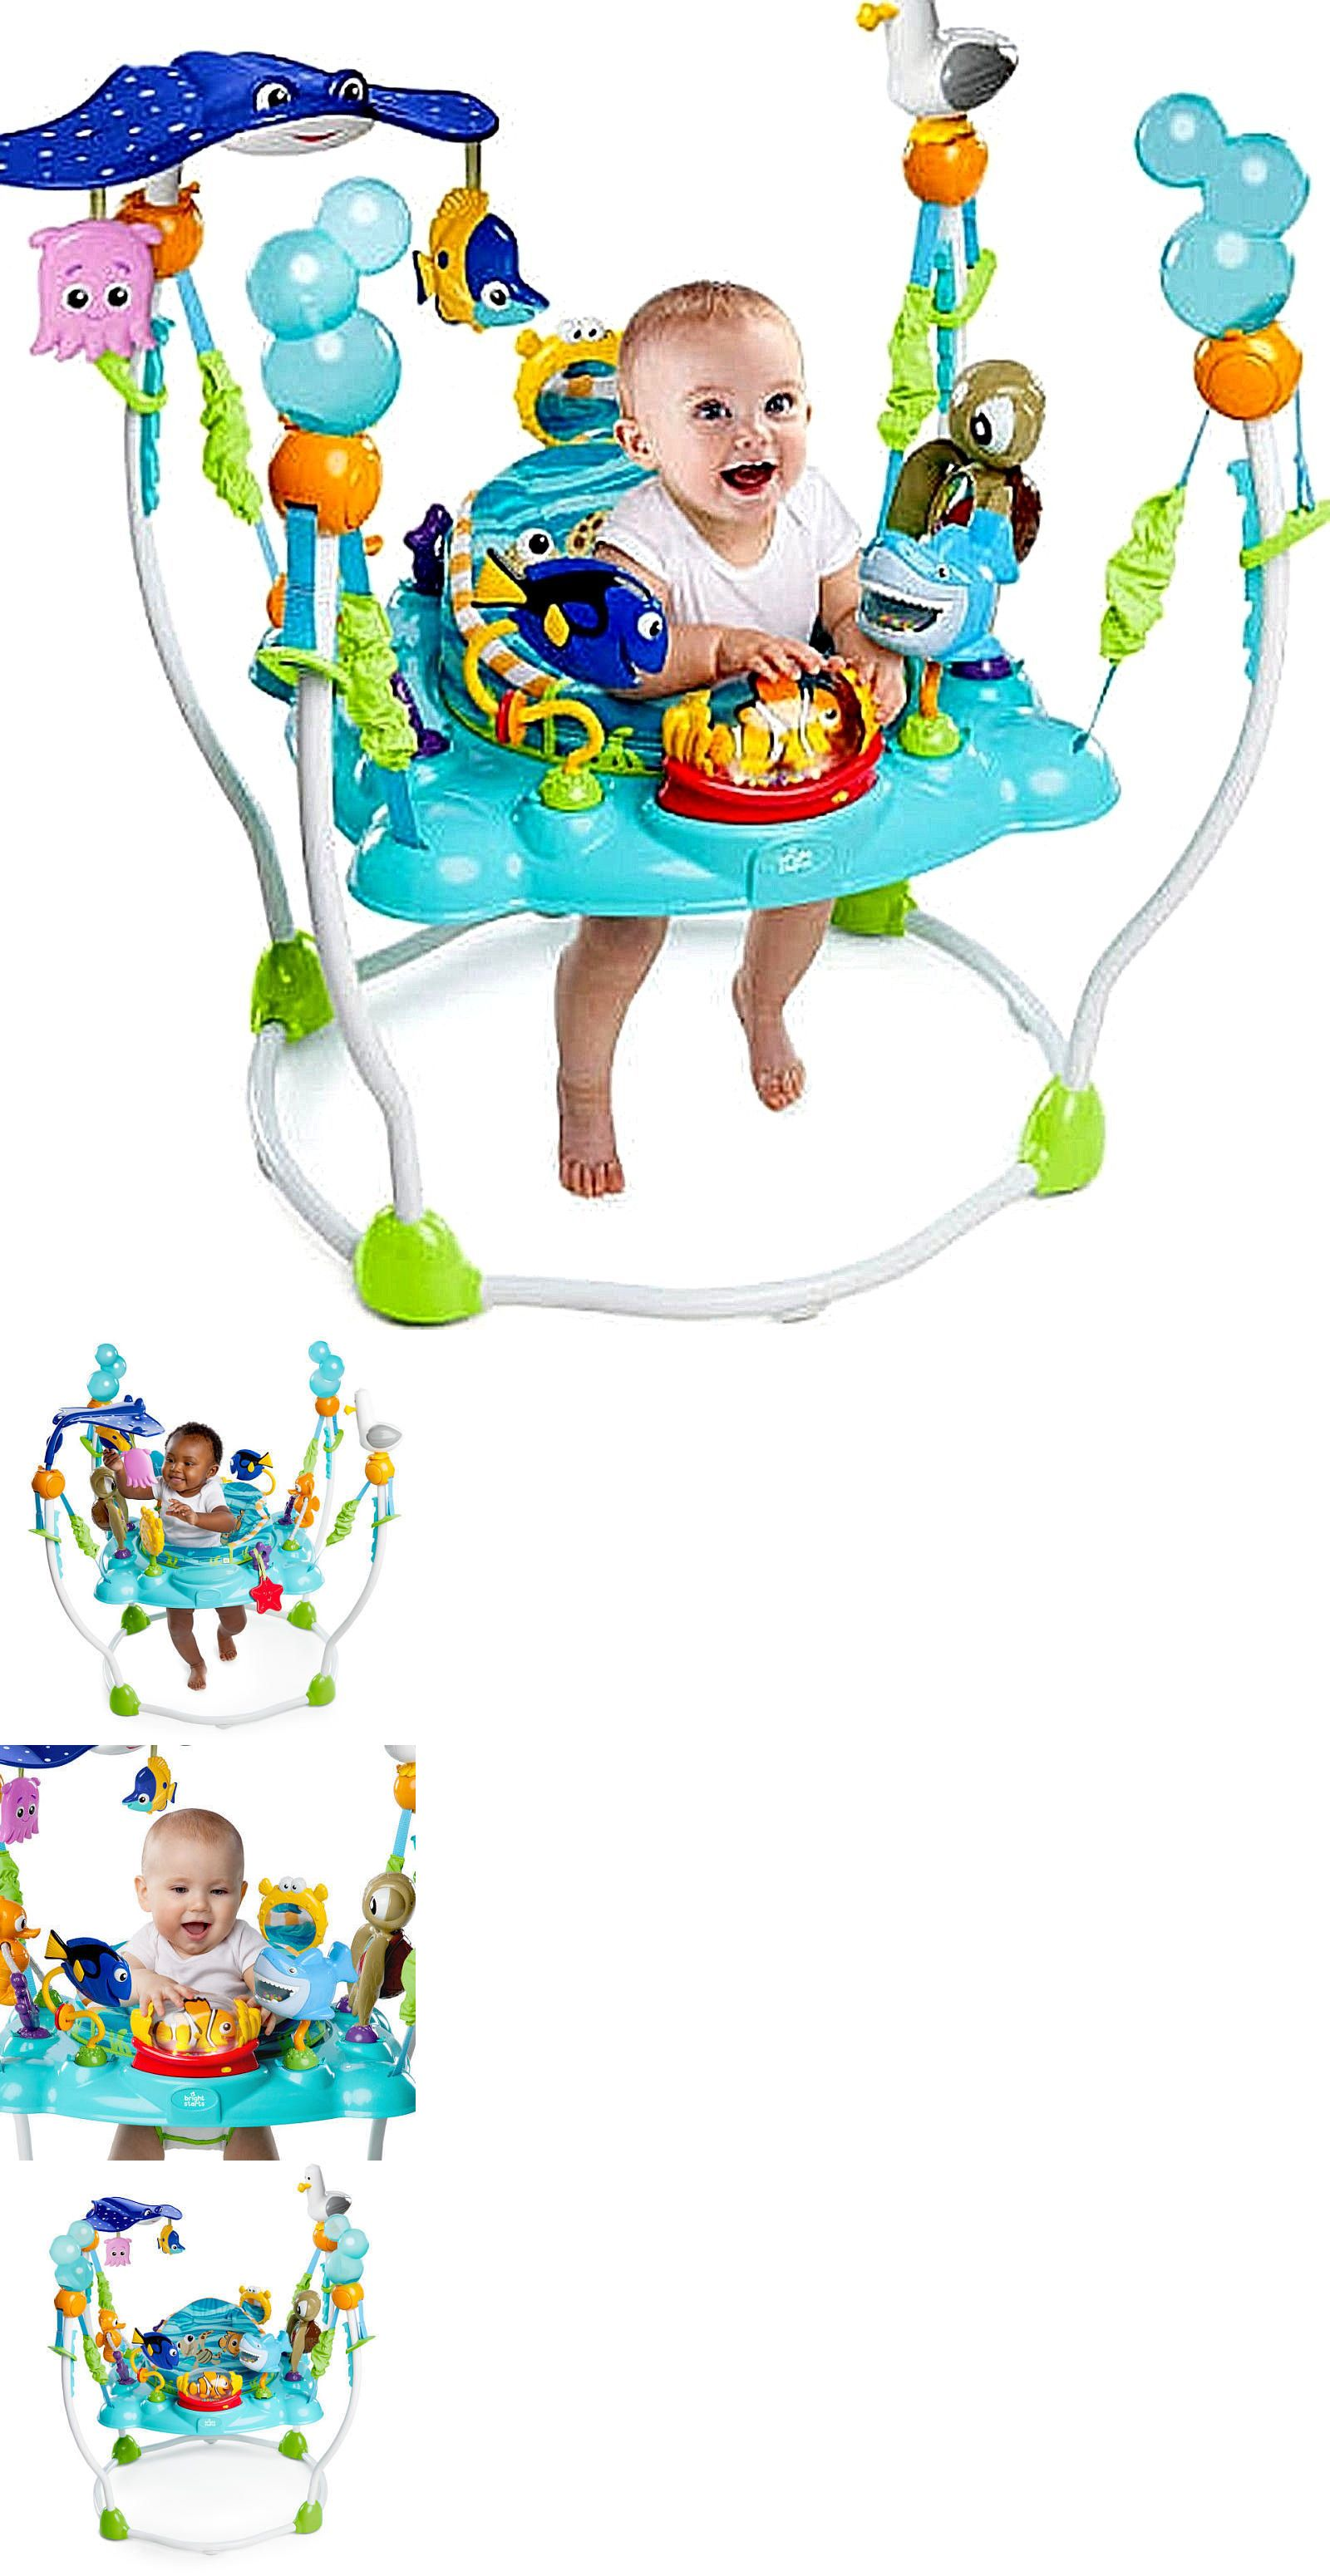 b0a9a0a12 Baby Jumper Disney Finding Nemo Dory Sea activities seat Bouncer ...